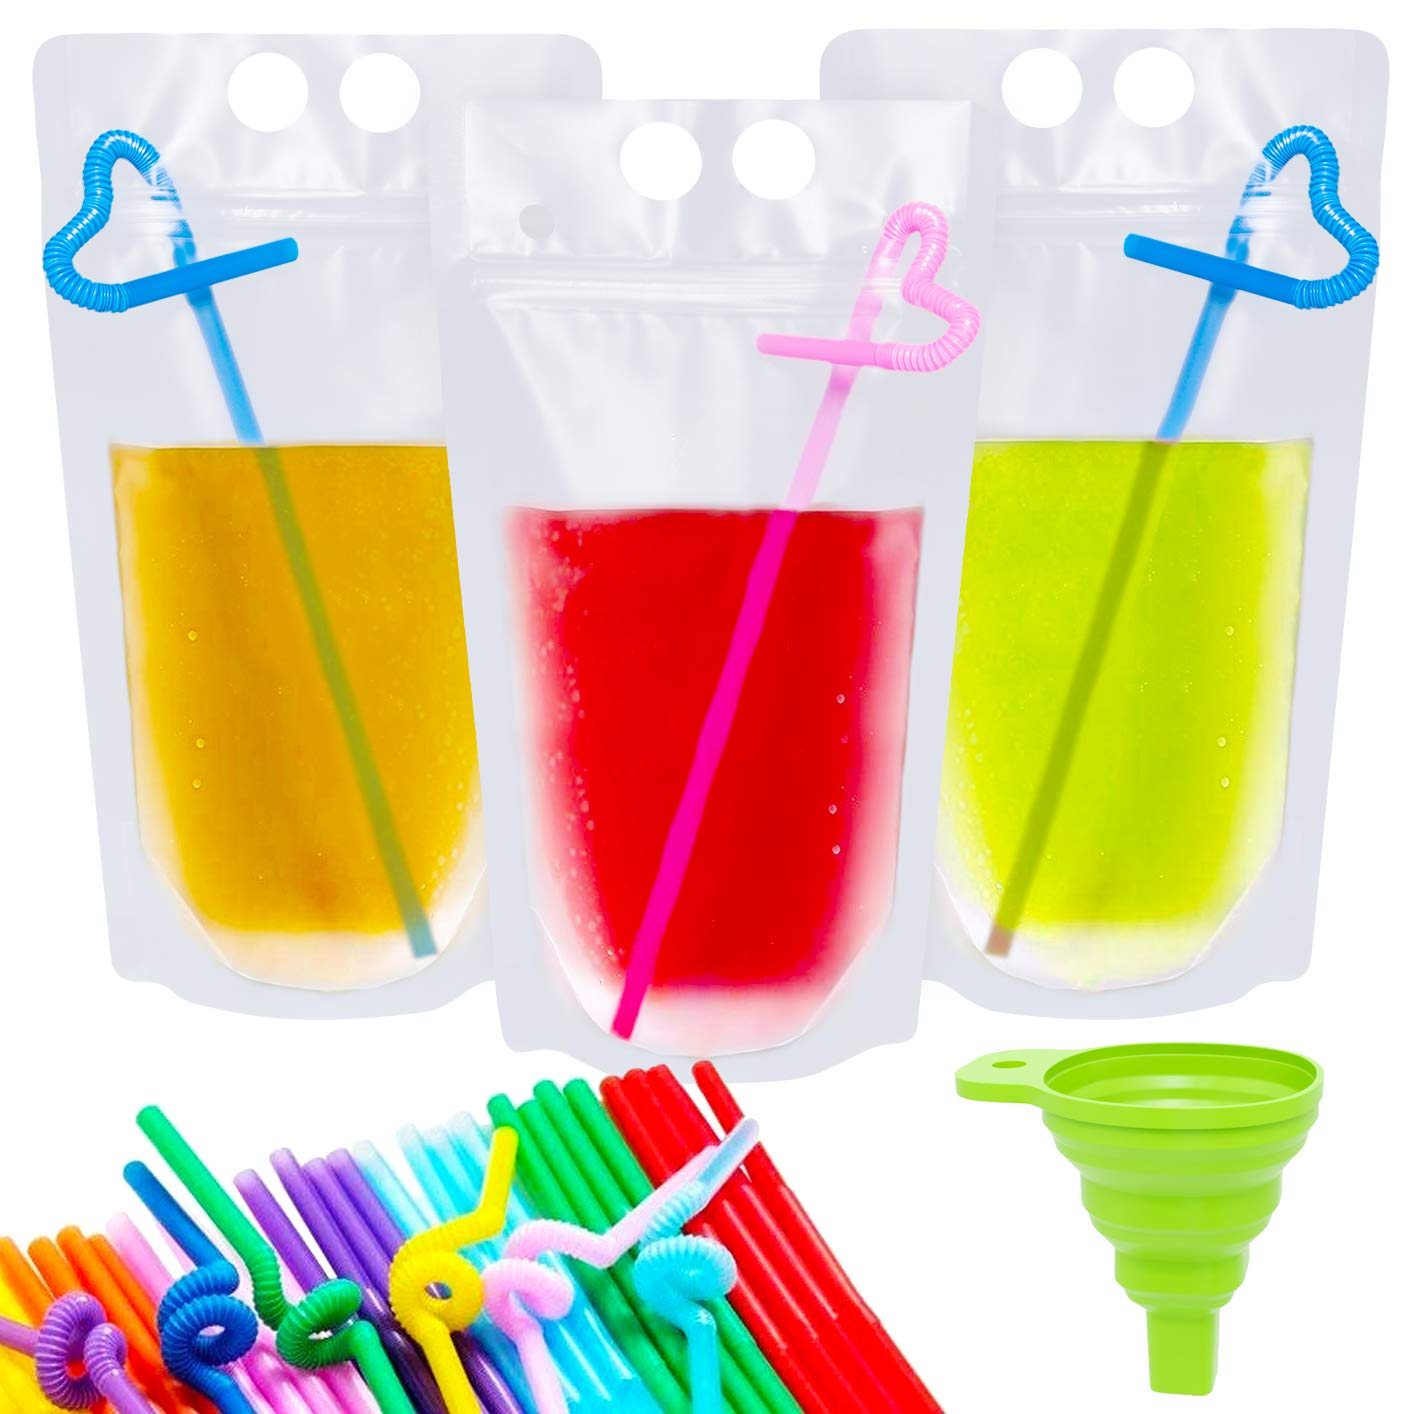 Ouddy 50 Pcs Drink Pouches with Straw Juice Pouches Bags with 50 Drink Straws, Frozip Smoothie Bags, Reclosable Zipper for Cold & Hot Drinks with 50 Straws & Silicone Funnel